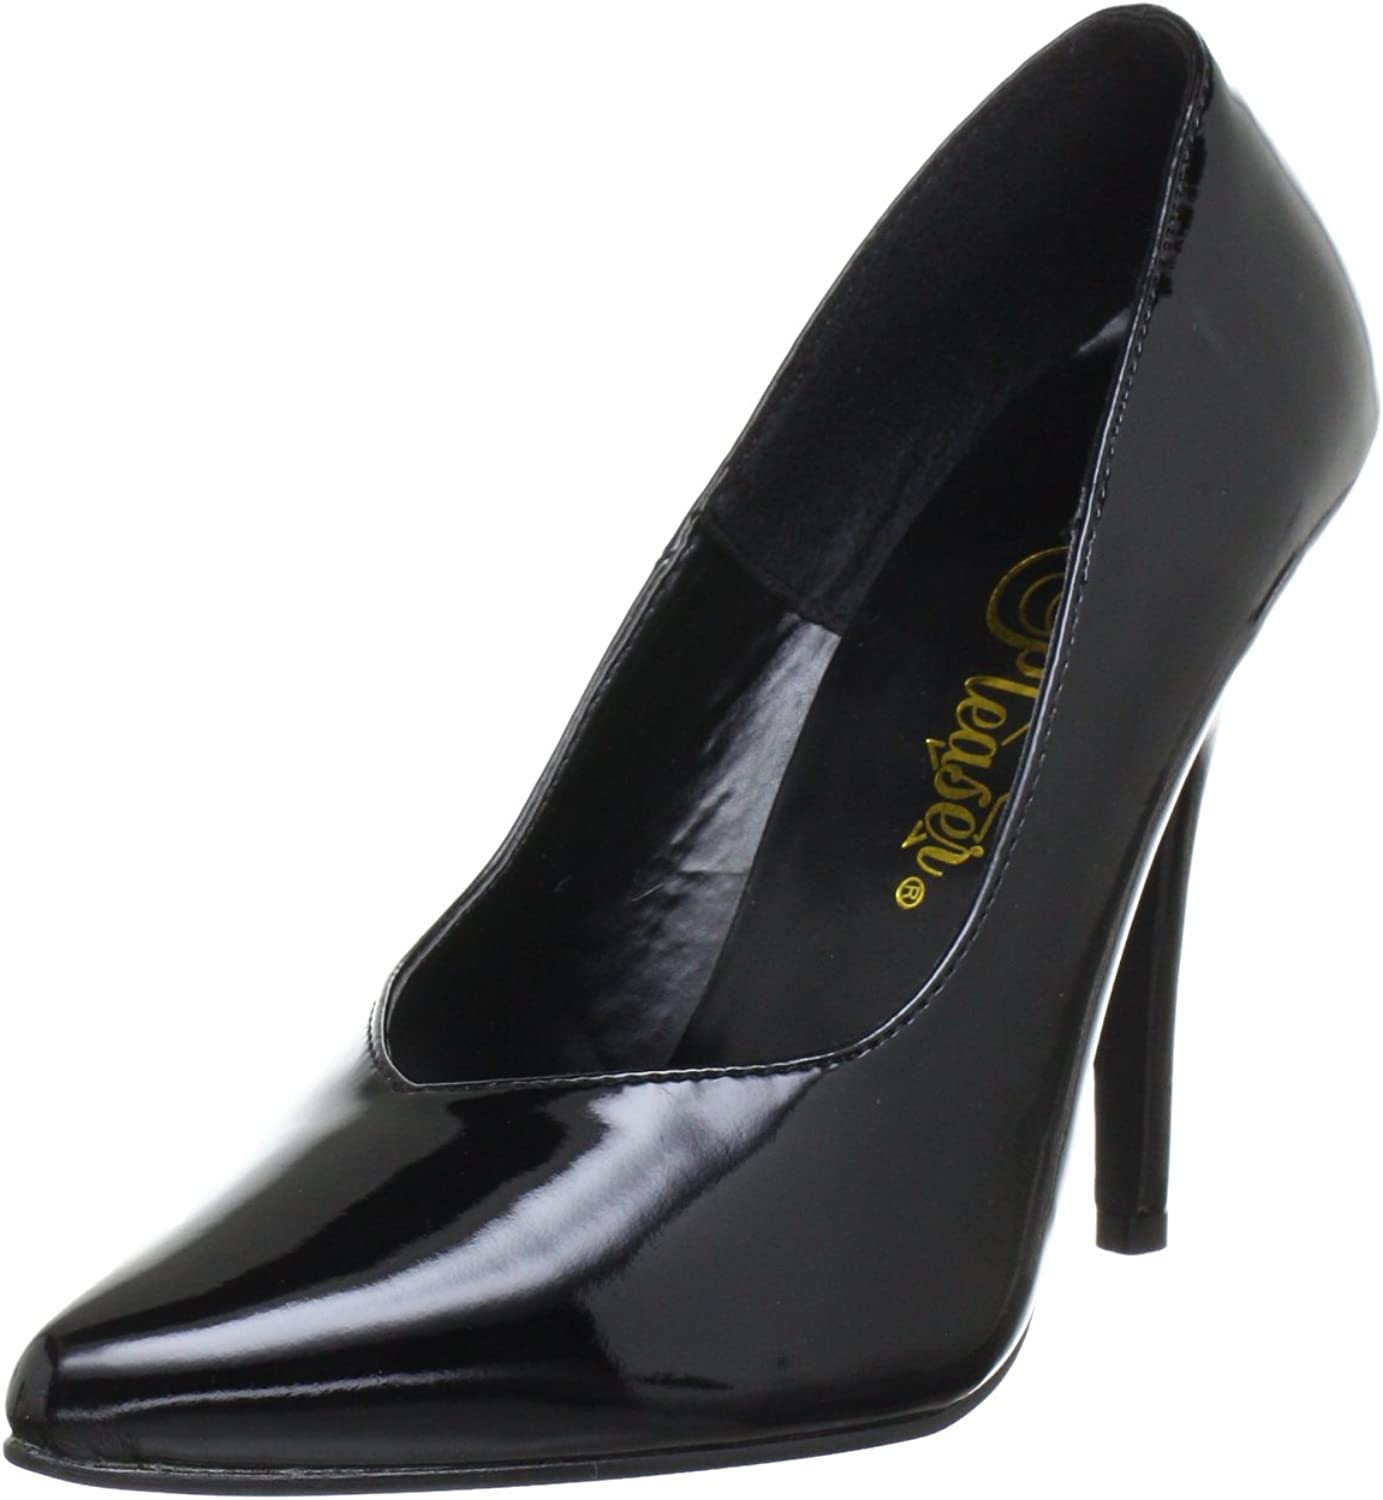 Pleaser Women's 8220 B Dress Pump